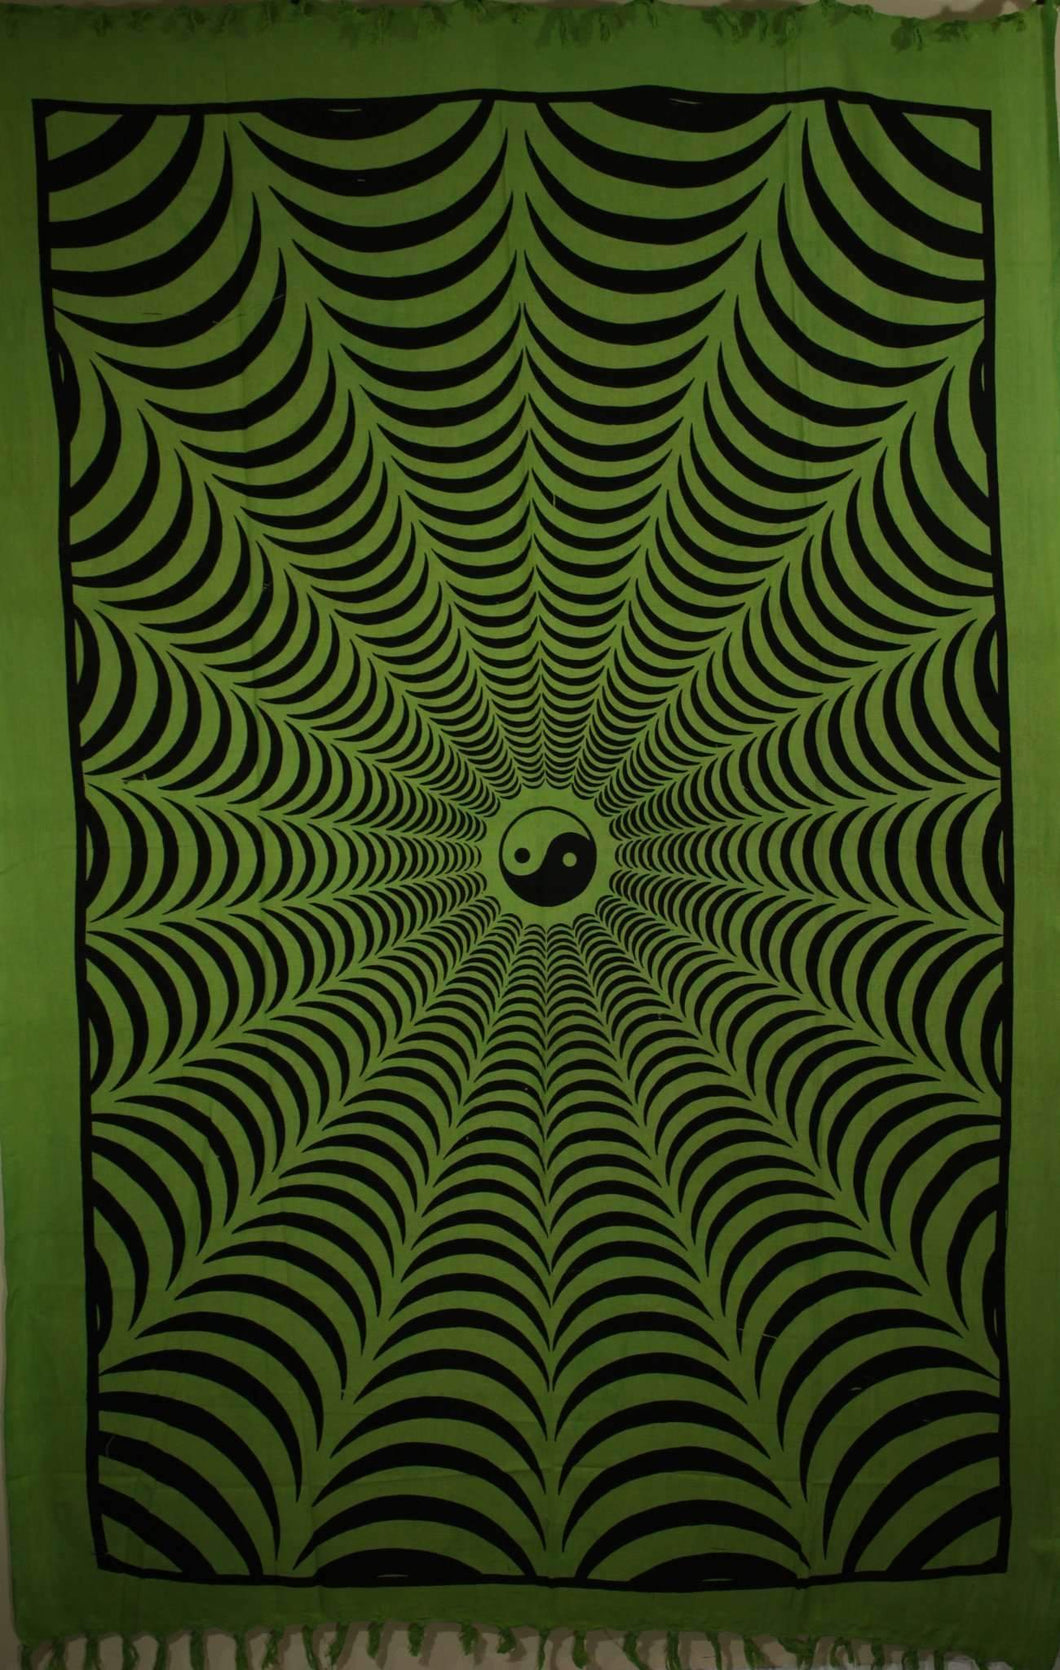 Green Trippy Yin Yang 3D Hand-loom Style Tapestry